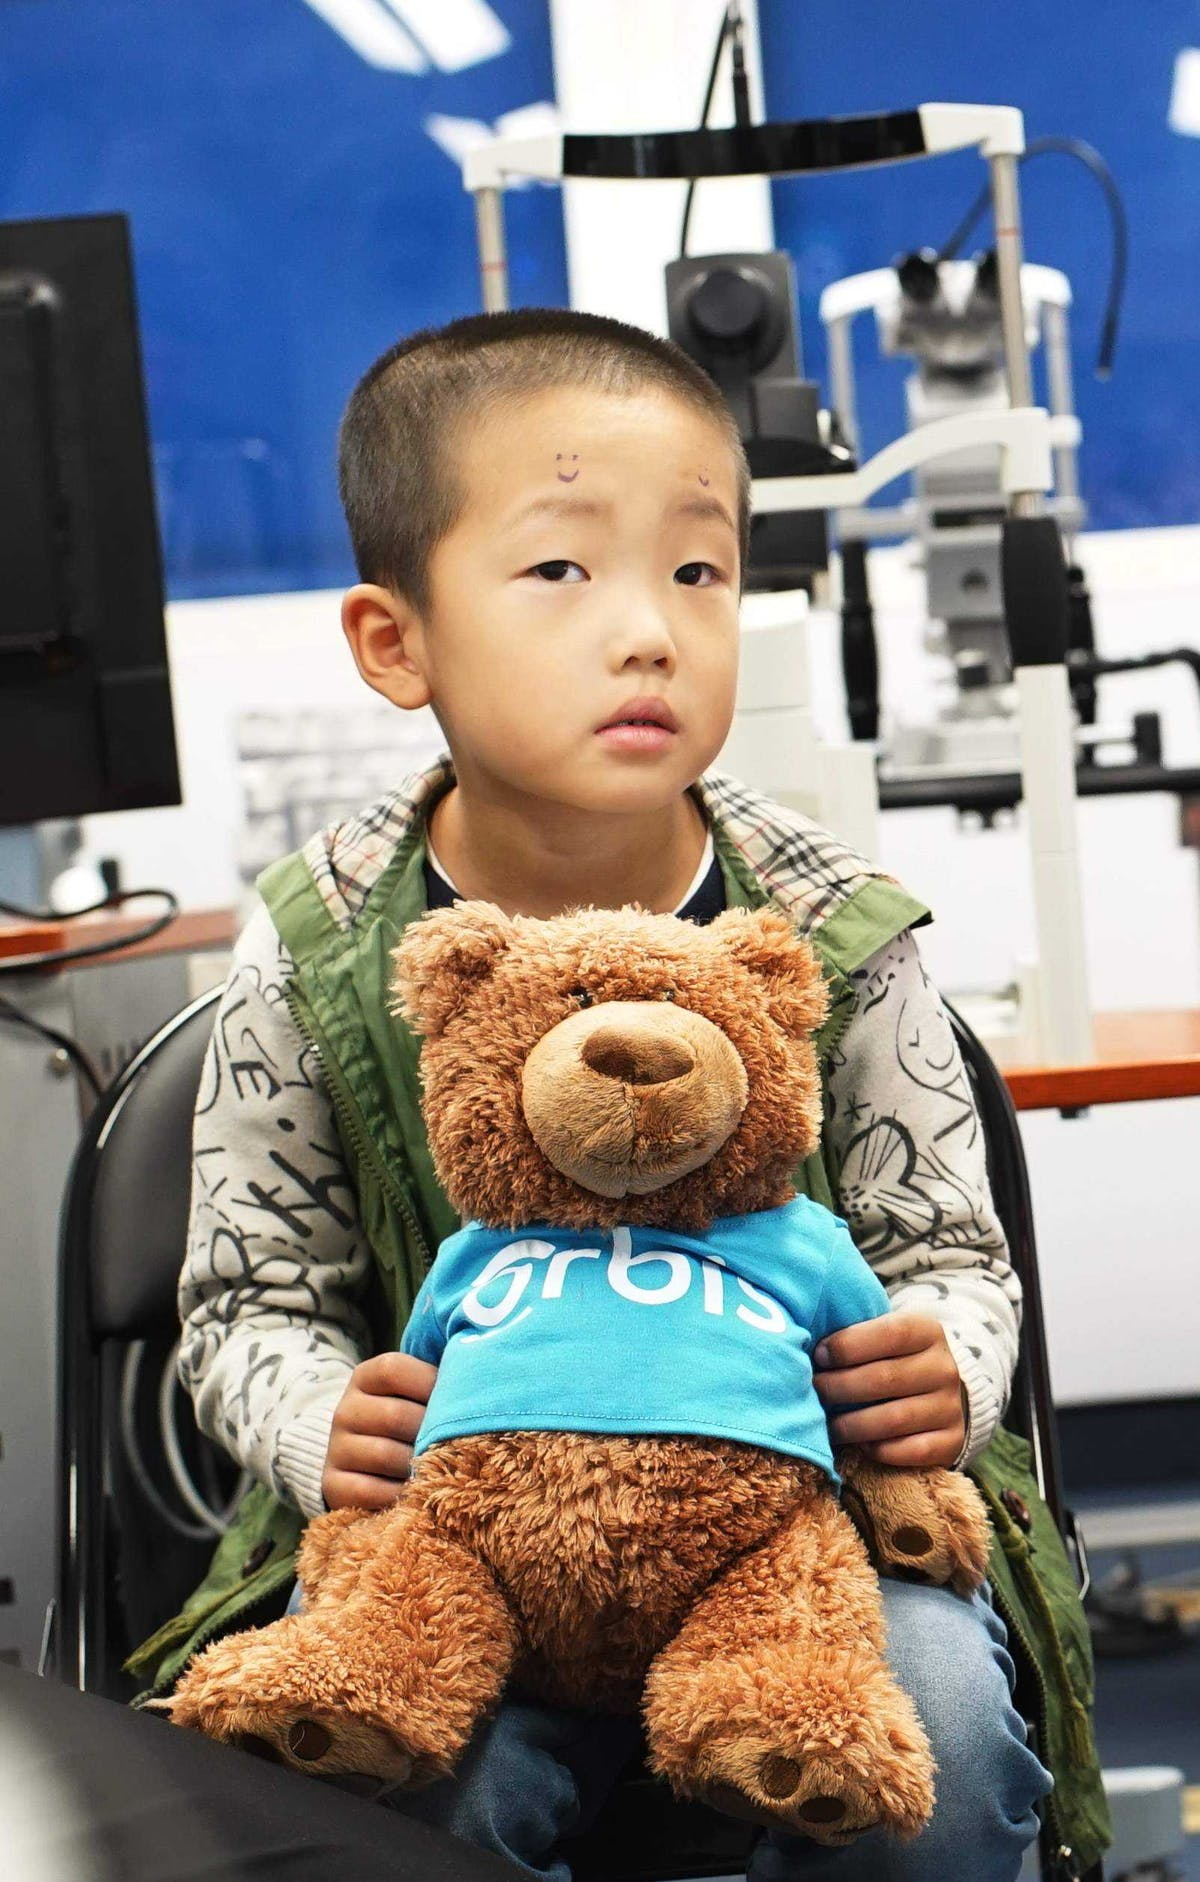 Zhang Yu's strabismus surgery was facilitated by Orbis volunteer Dr. Douglas Fredrick